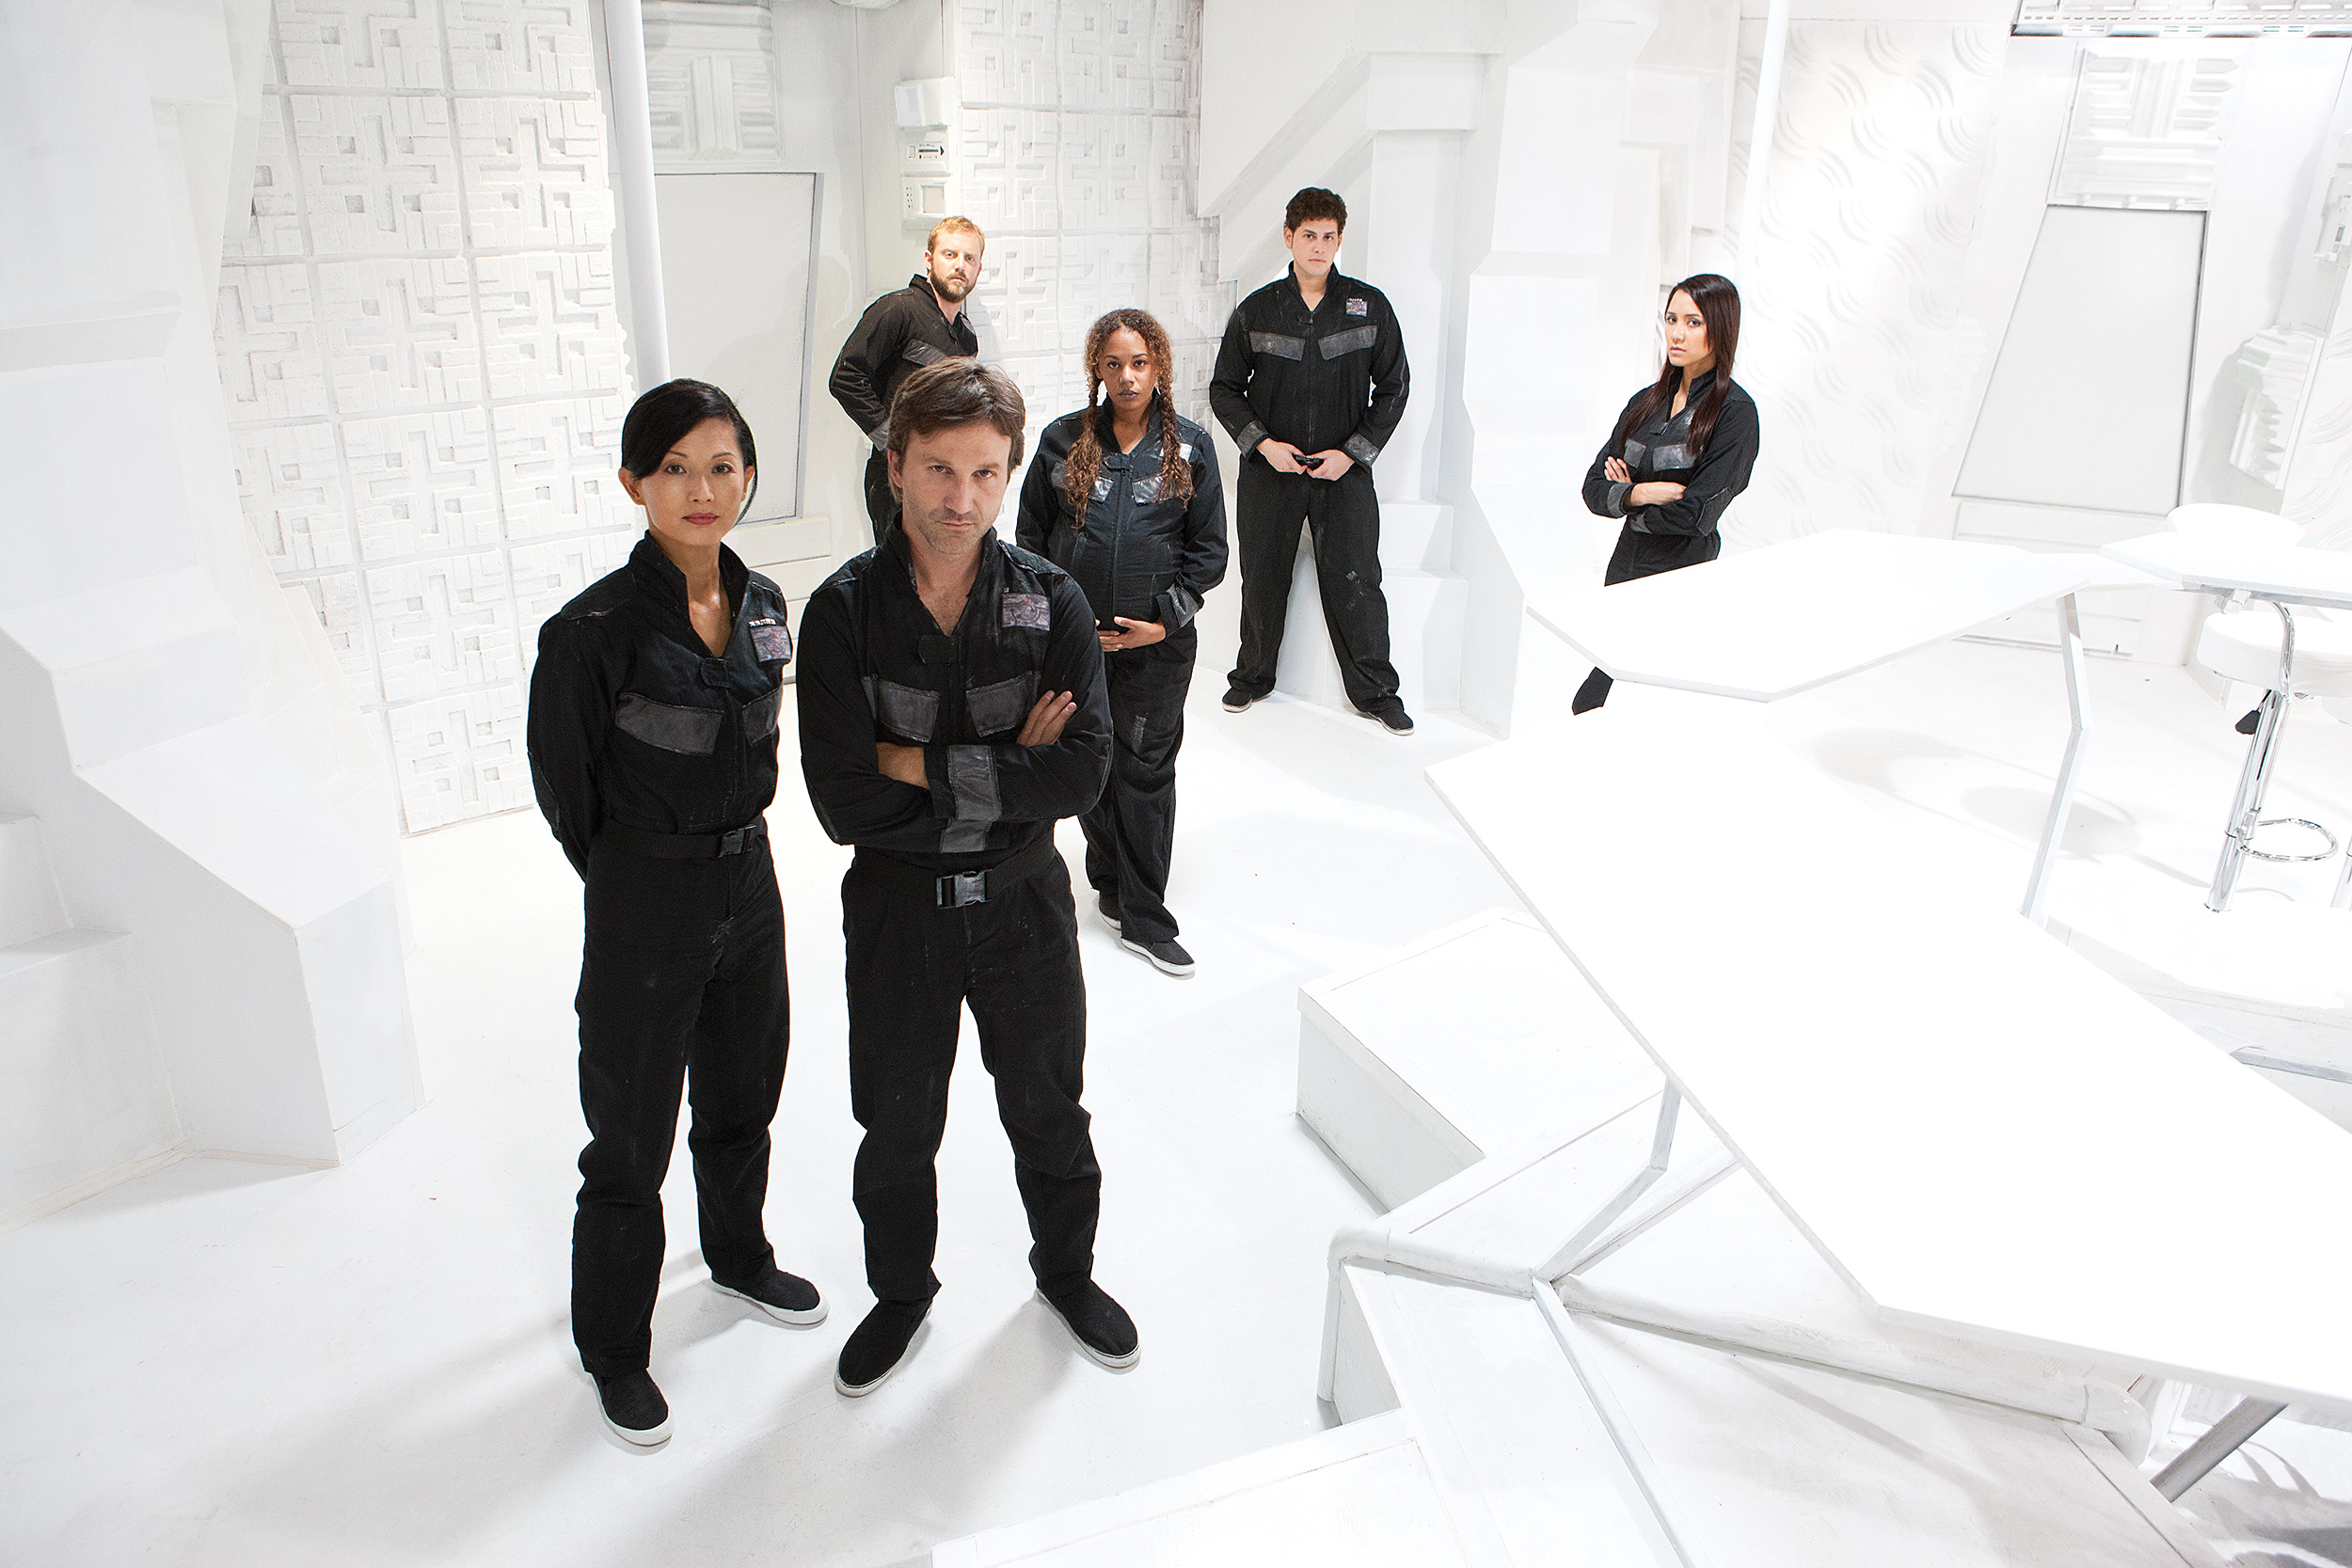 The cast of the first 360° film, White Room: 02B3, from Roddenberry Entertainment.